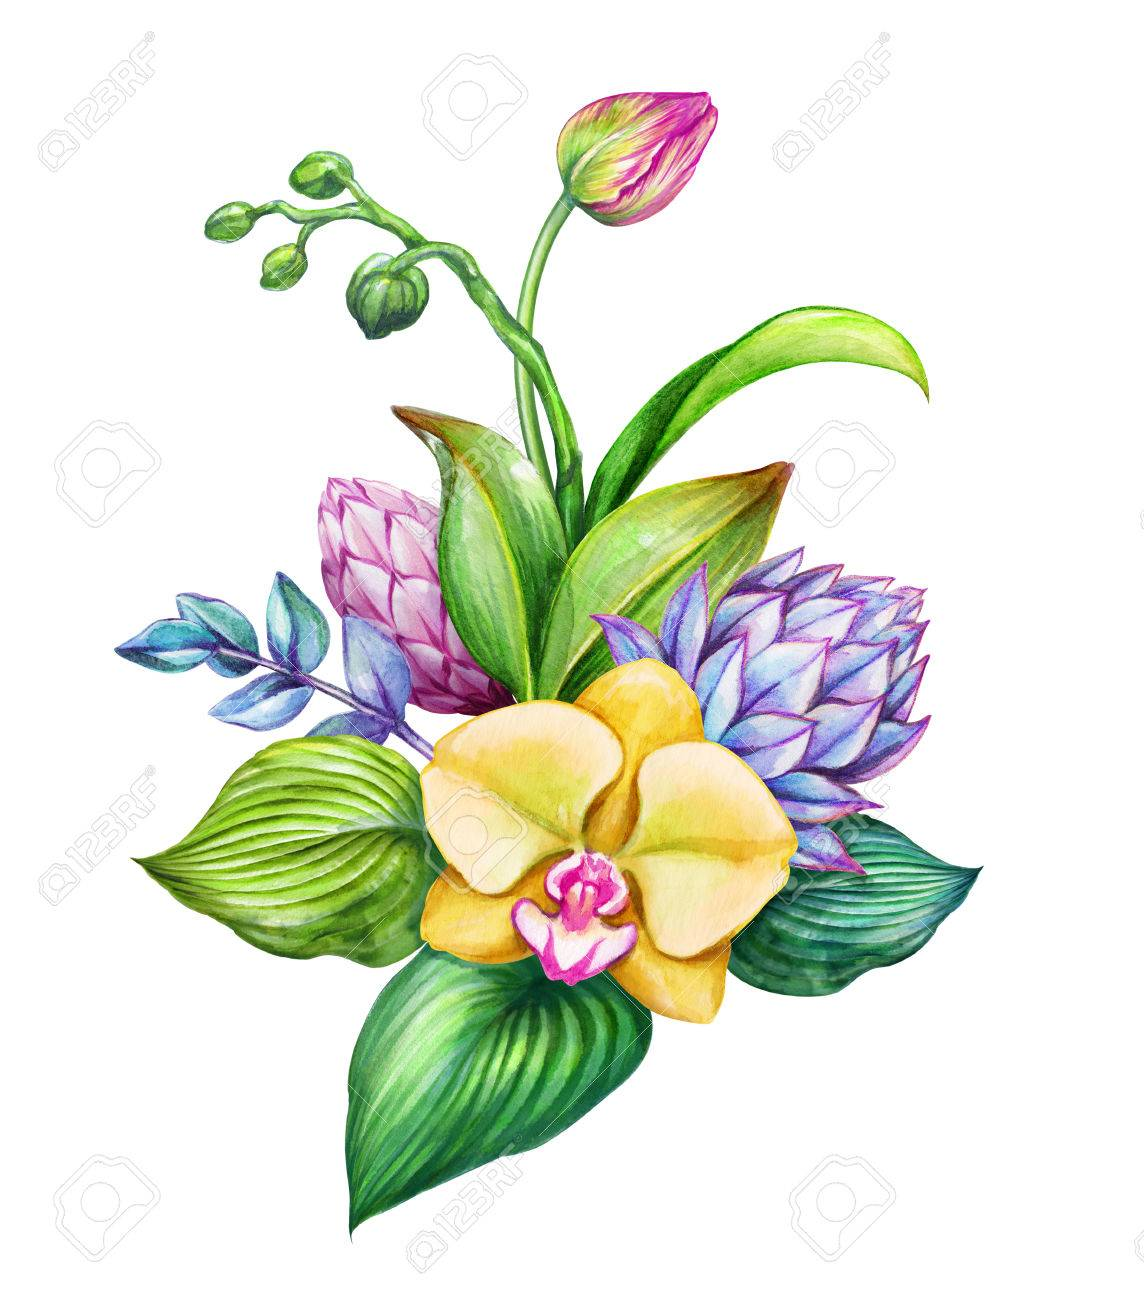 Watercolor Floral Illustration, Exotic Nature, Tropical Flowers ...